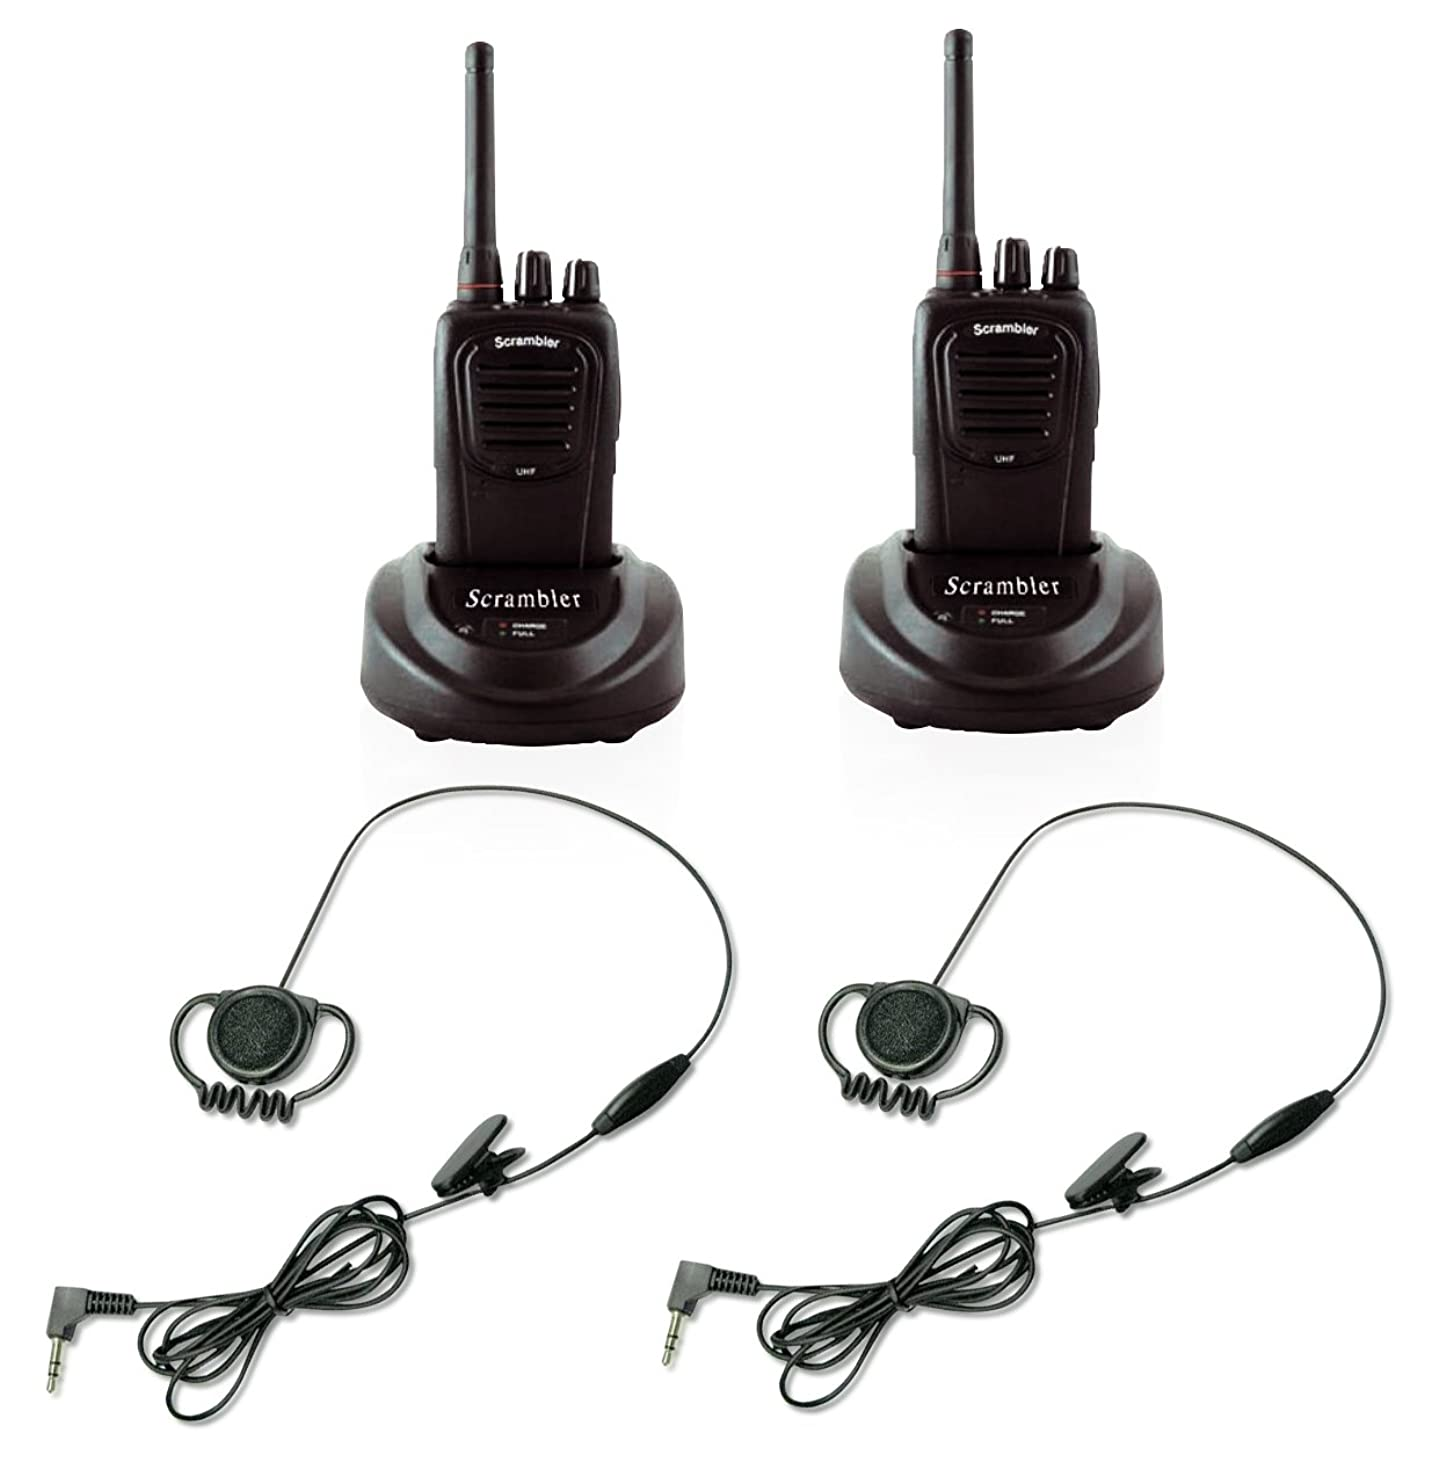 Eartec Scrambler SC-1000 FRS 2 Way Radio System for 2 Users - 2-Pack of UHF Transceivers with Detachable PTT Headsets